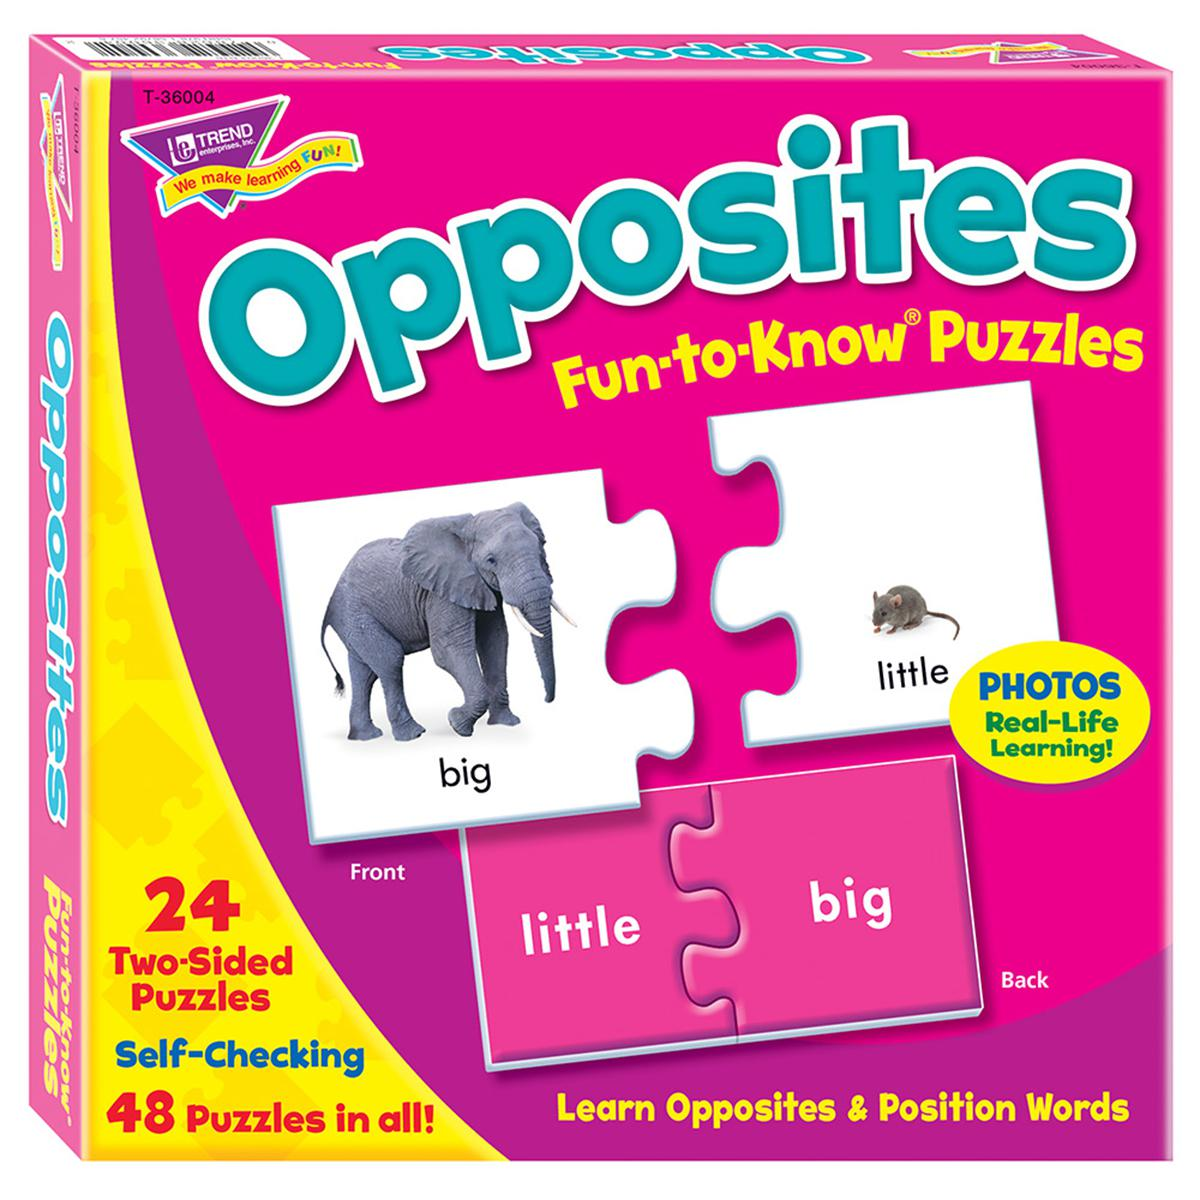 Fun to Know Puzzles: Opposites